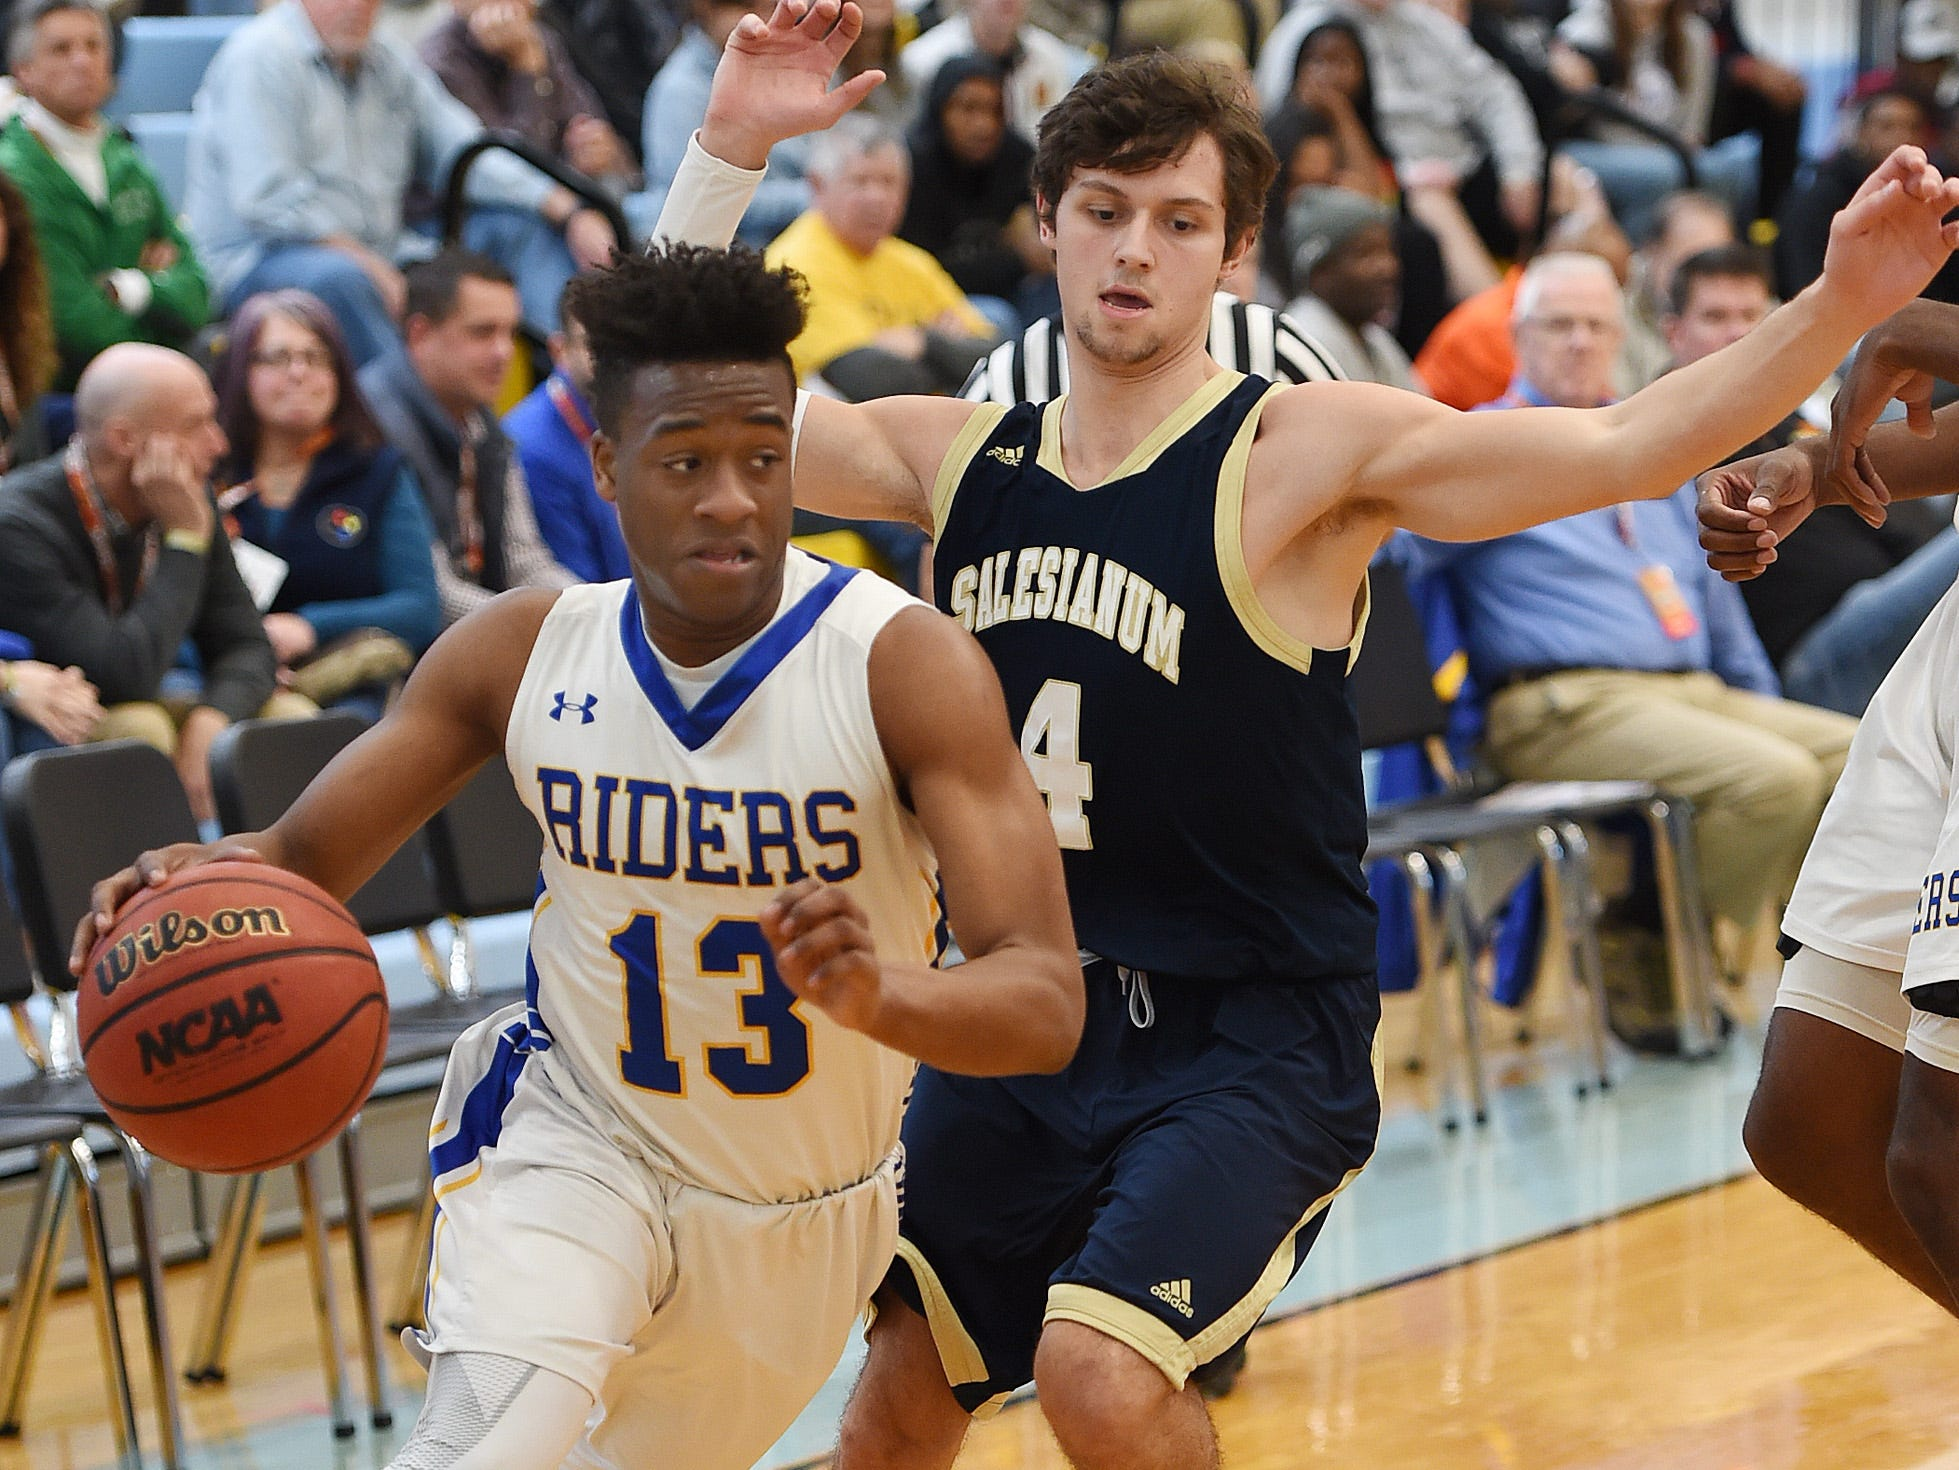 CR's #13 Zayquan Eaton goes for a basket past Sallies #4 Max Ferrante as Slam Dunk to the Beach kicked off on Thursday December 27th with the opening game of Caesar Rodney playing Salesianum at the tournament held at Cape Henlopen High School.